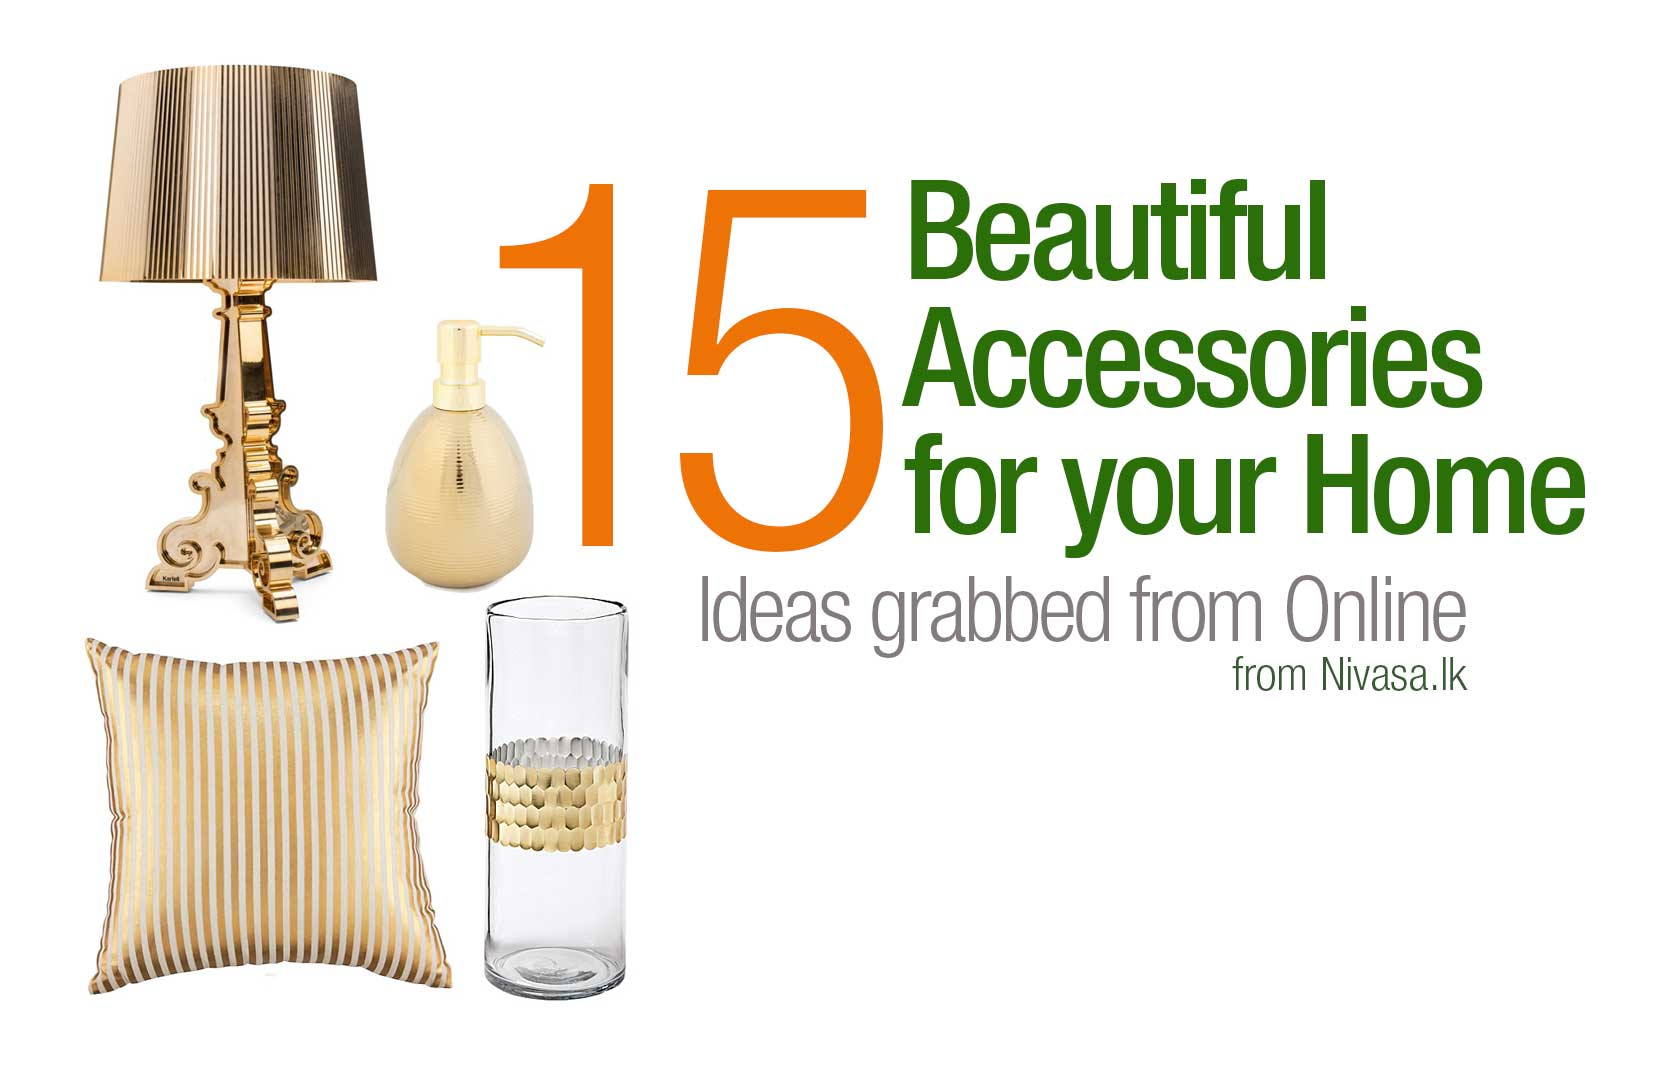 15 Beautiful Accessories for your Home